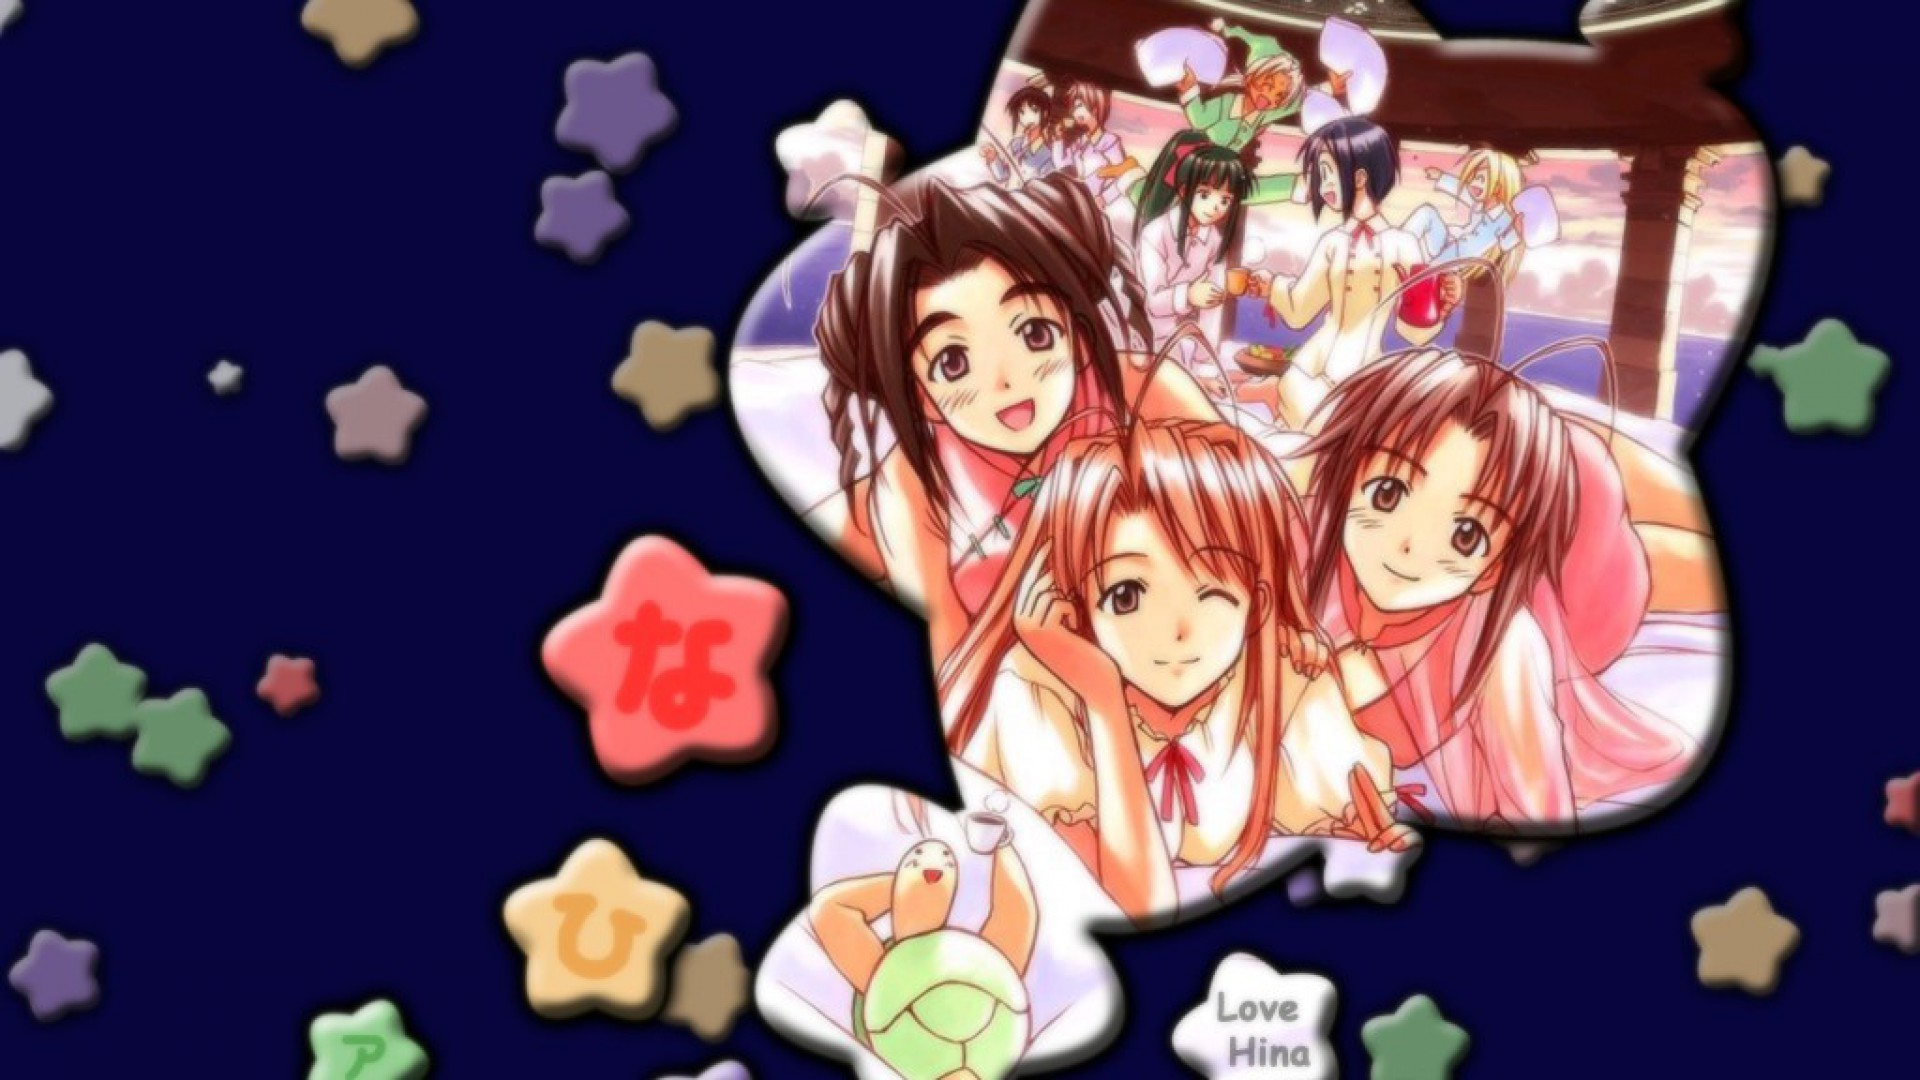 Free Download Love Hina Wallpapers 1920x1080 For Your